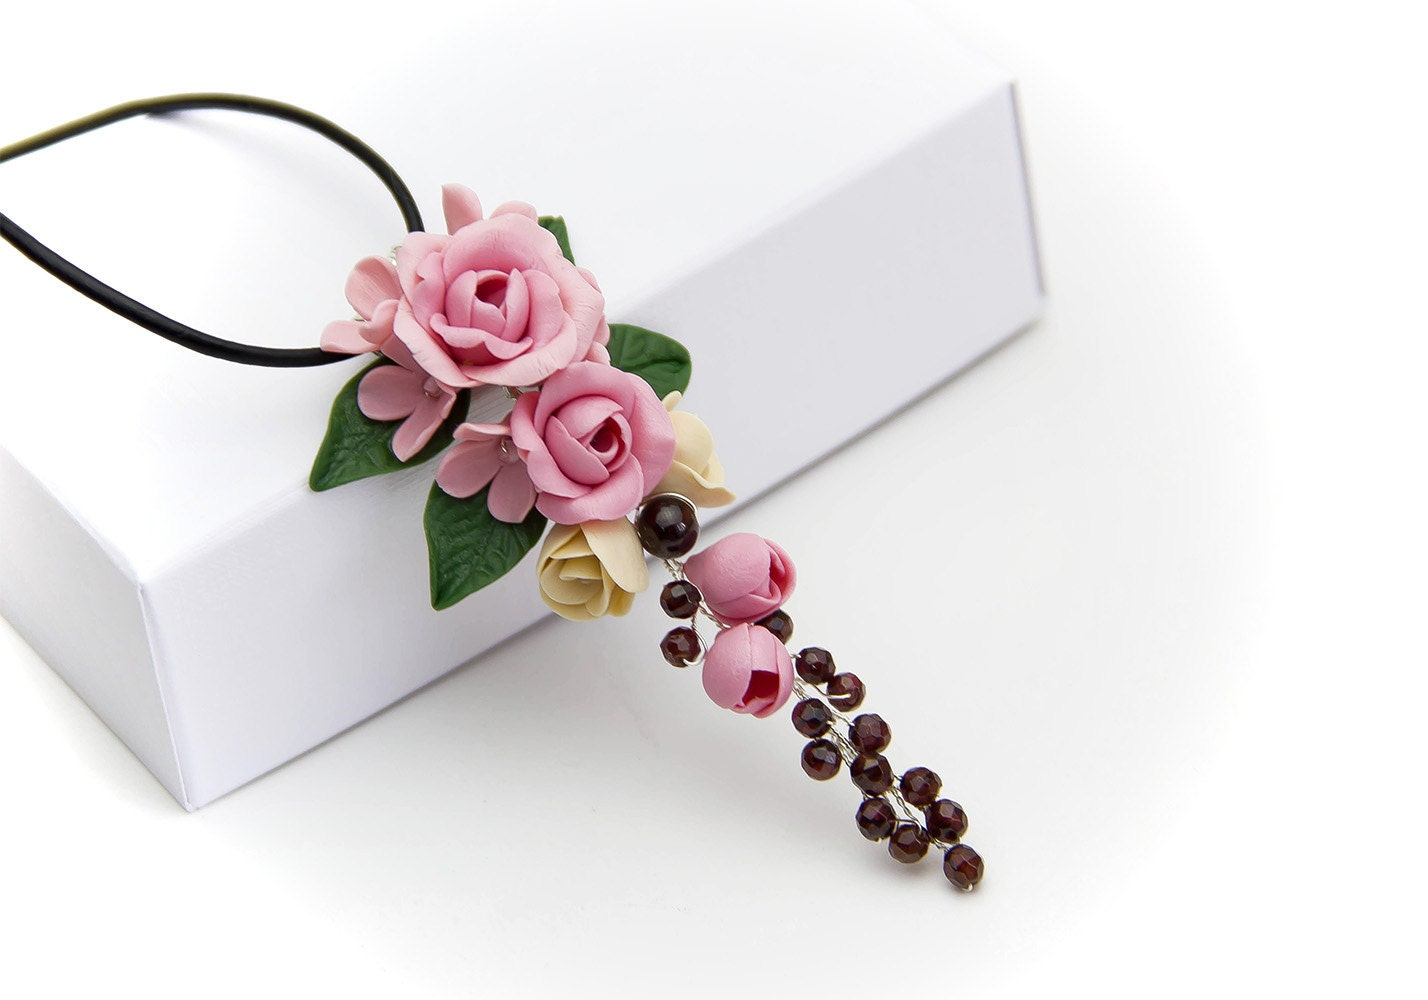 Floral Pendant Рolymer clay jewelry Рolymer clay flower Pink